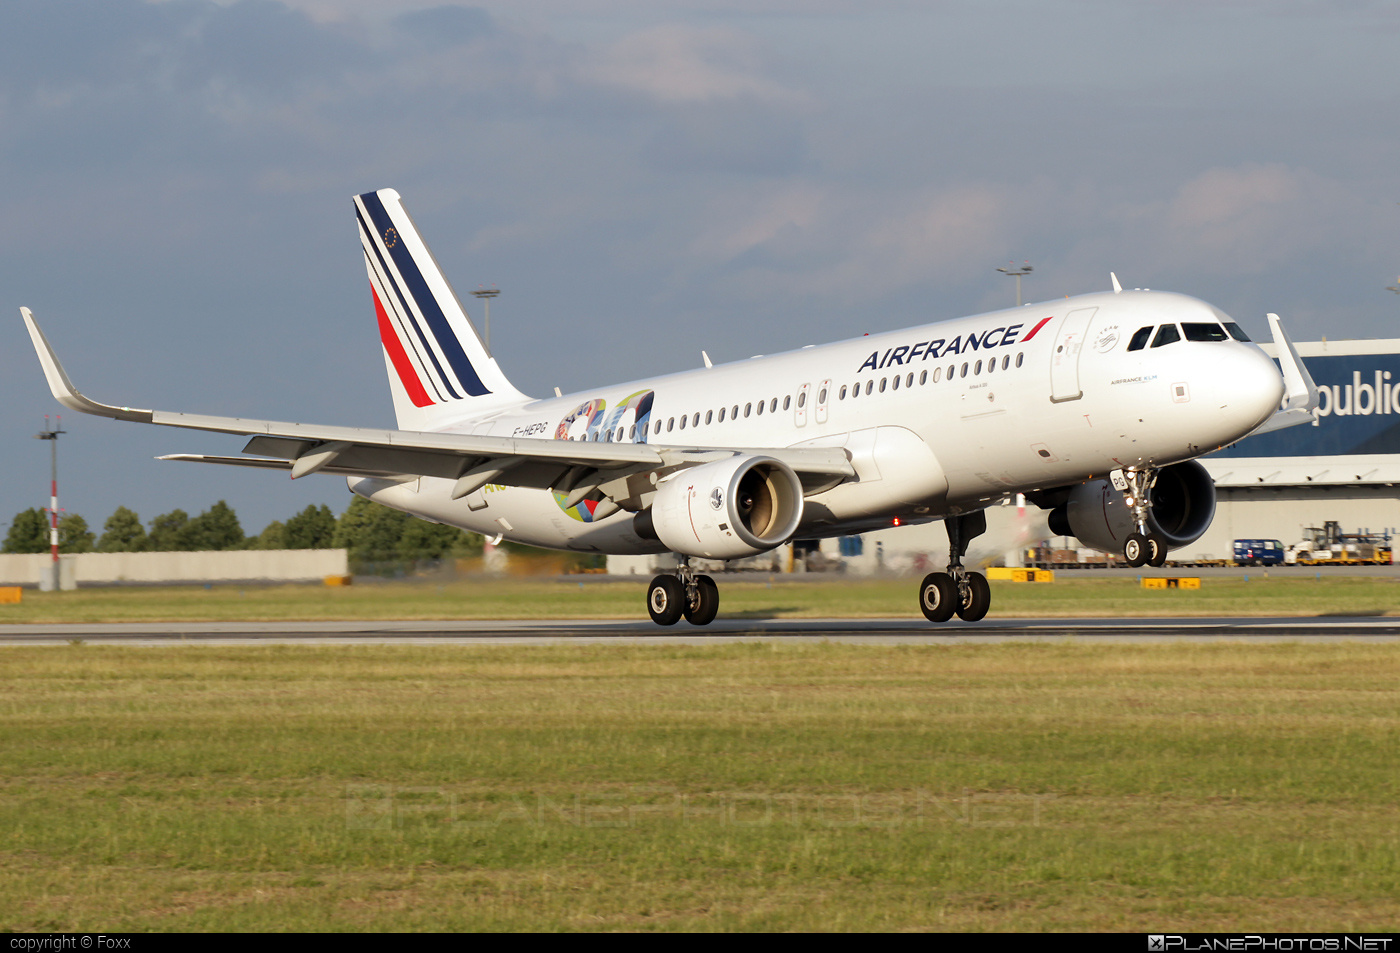 Airbus A320-214 - F-HEPG operated by Air France #a320 #a320family #airbus #airbus320 #airfrance